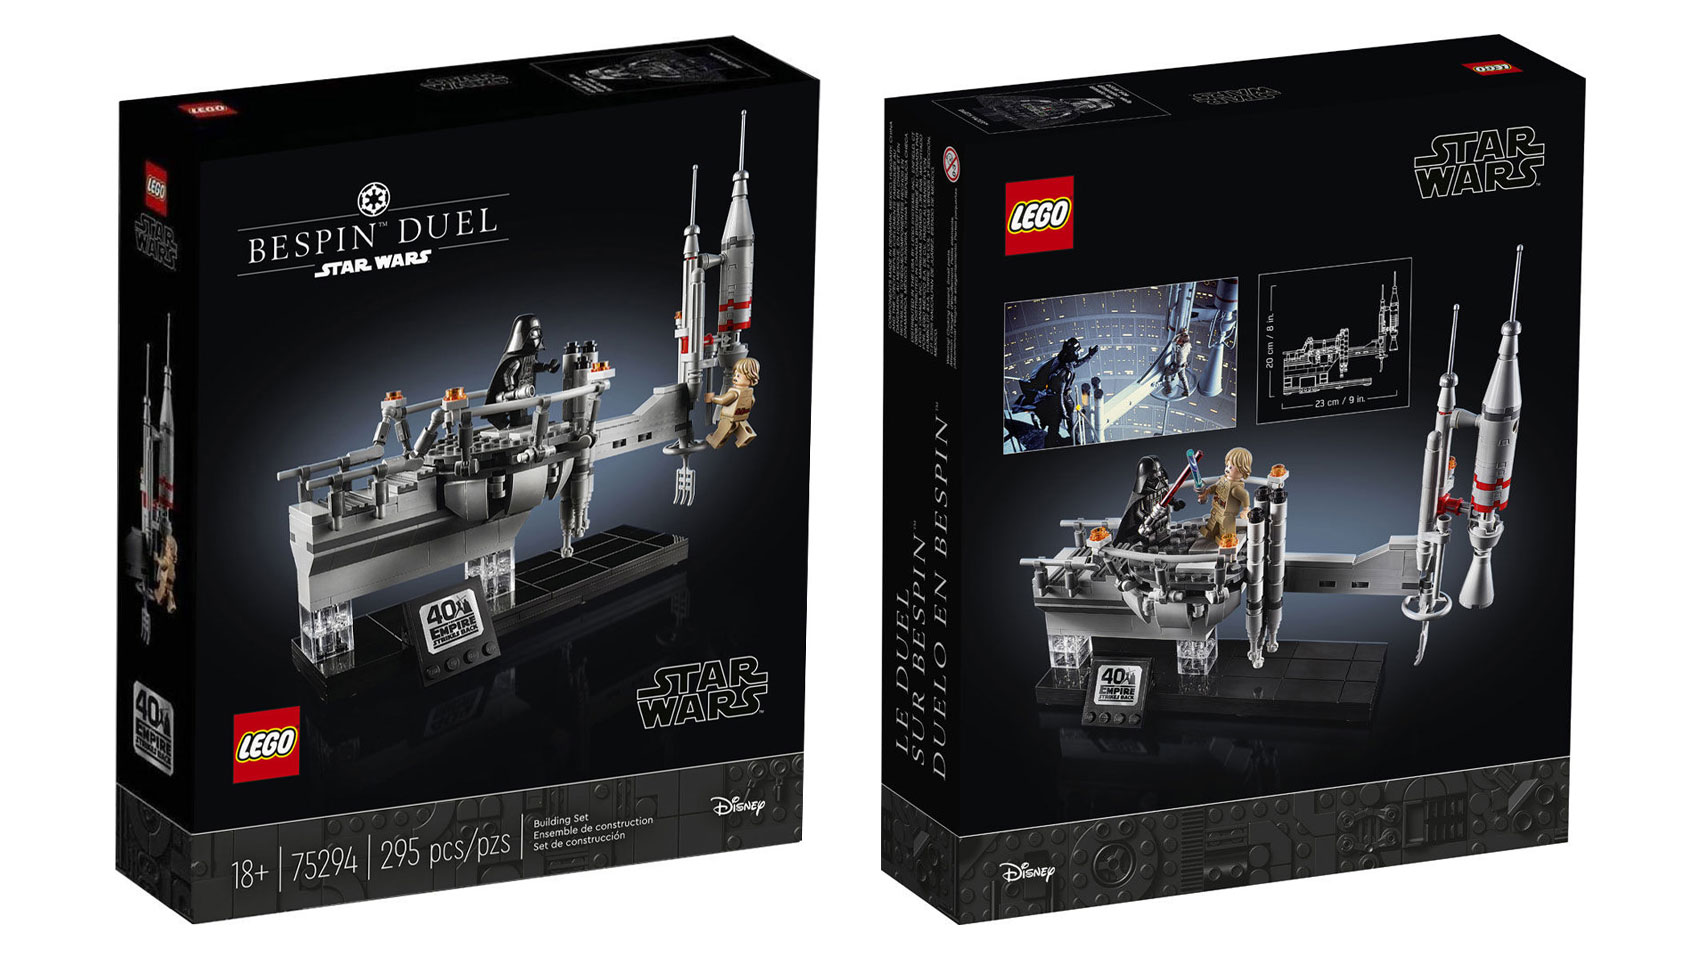 Lego Star Wars Bespin Duel 75294 Packaging